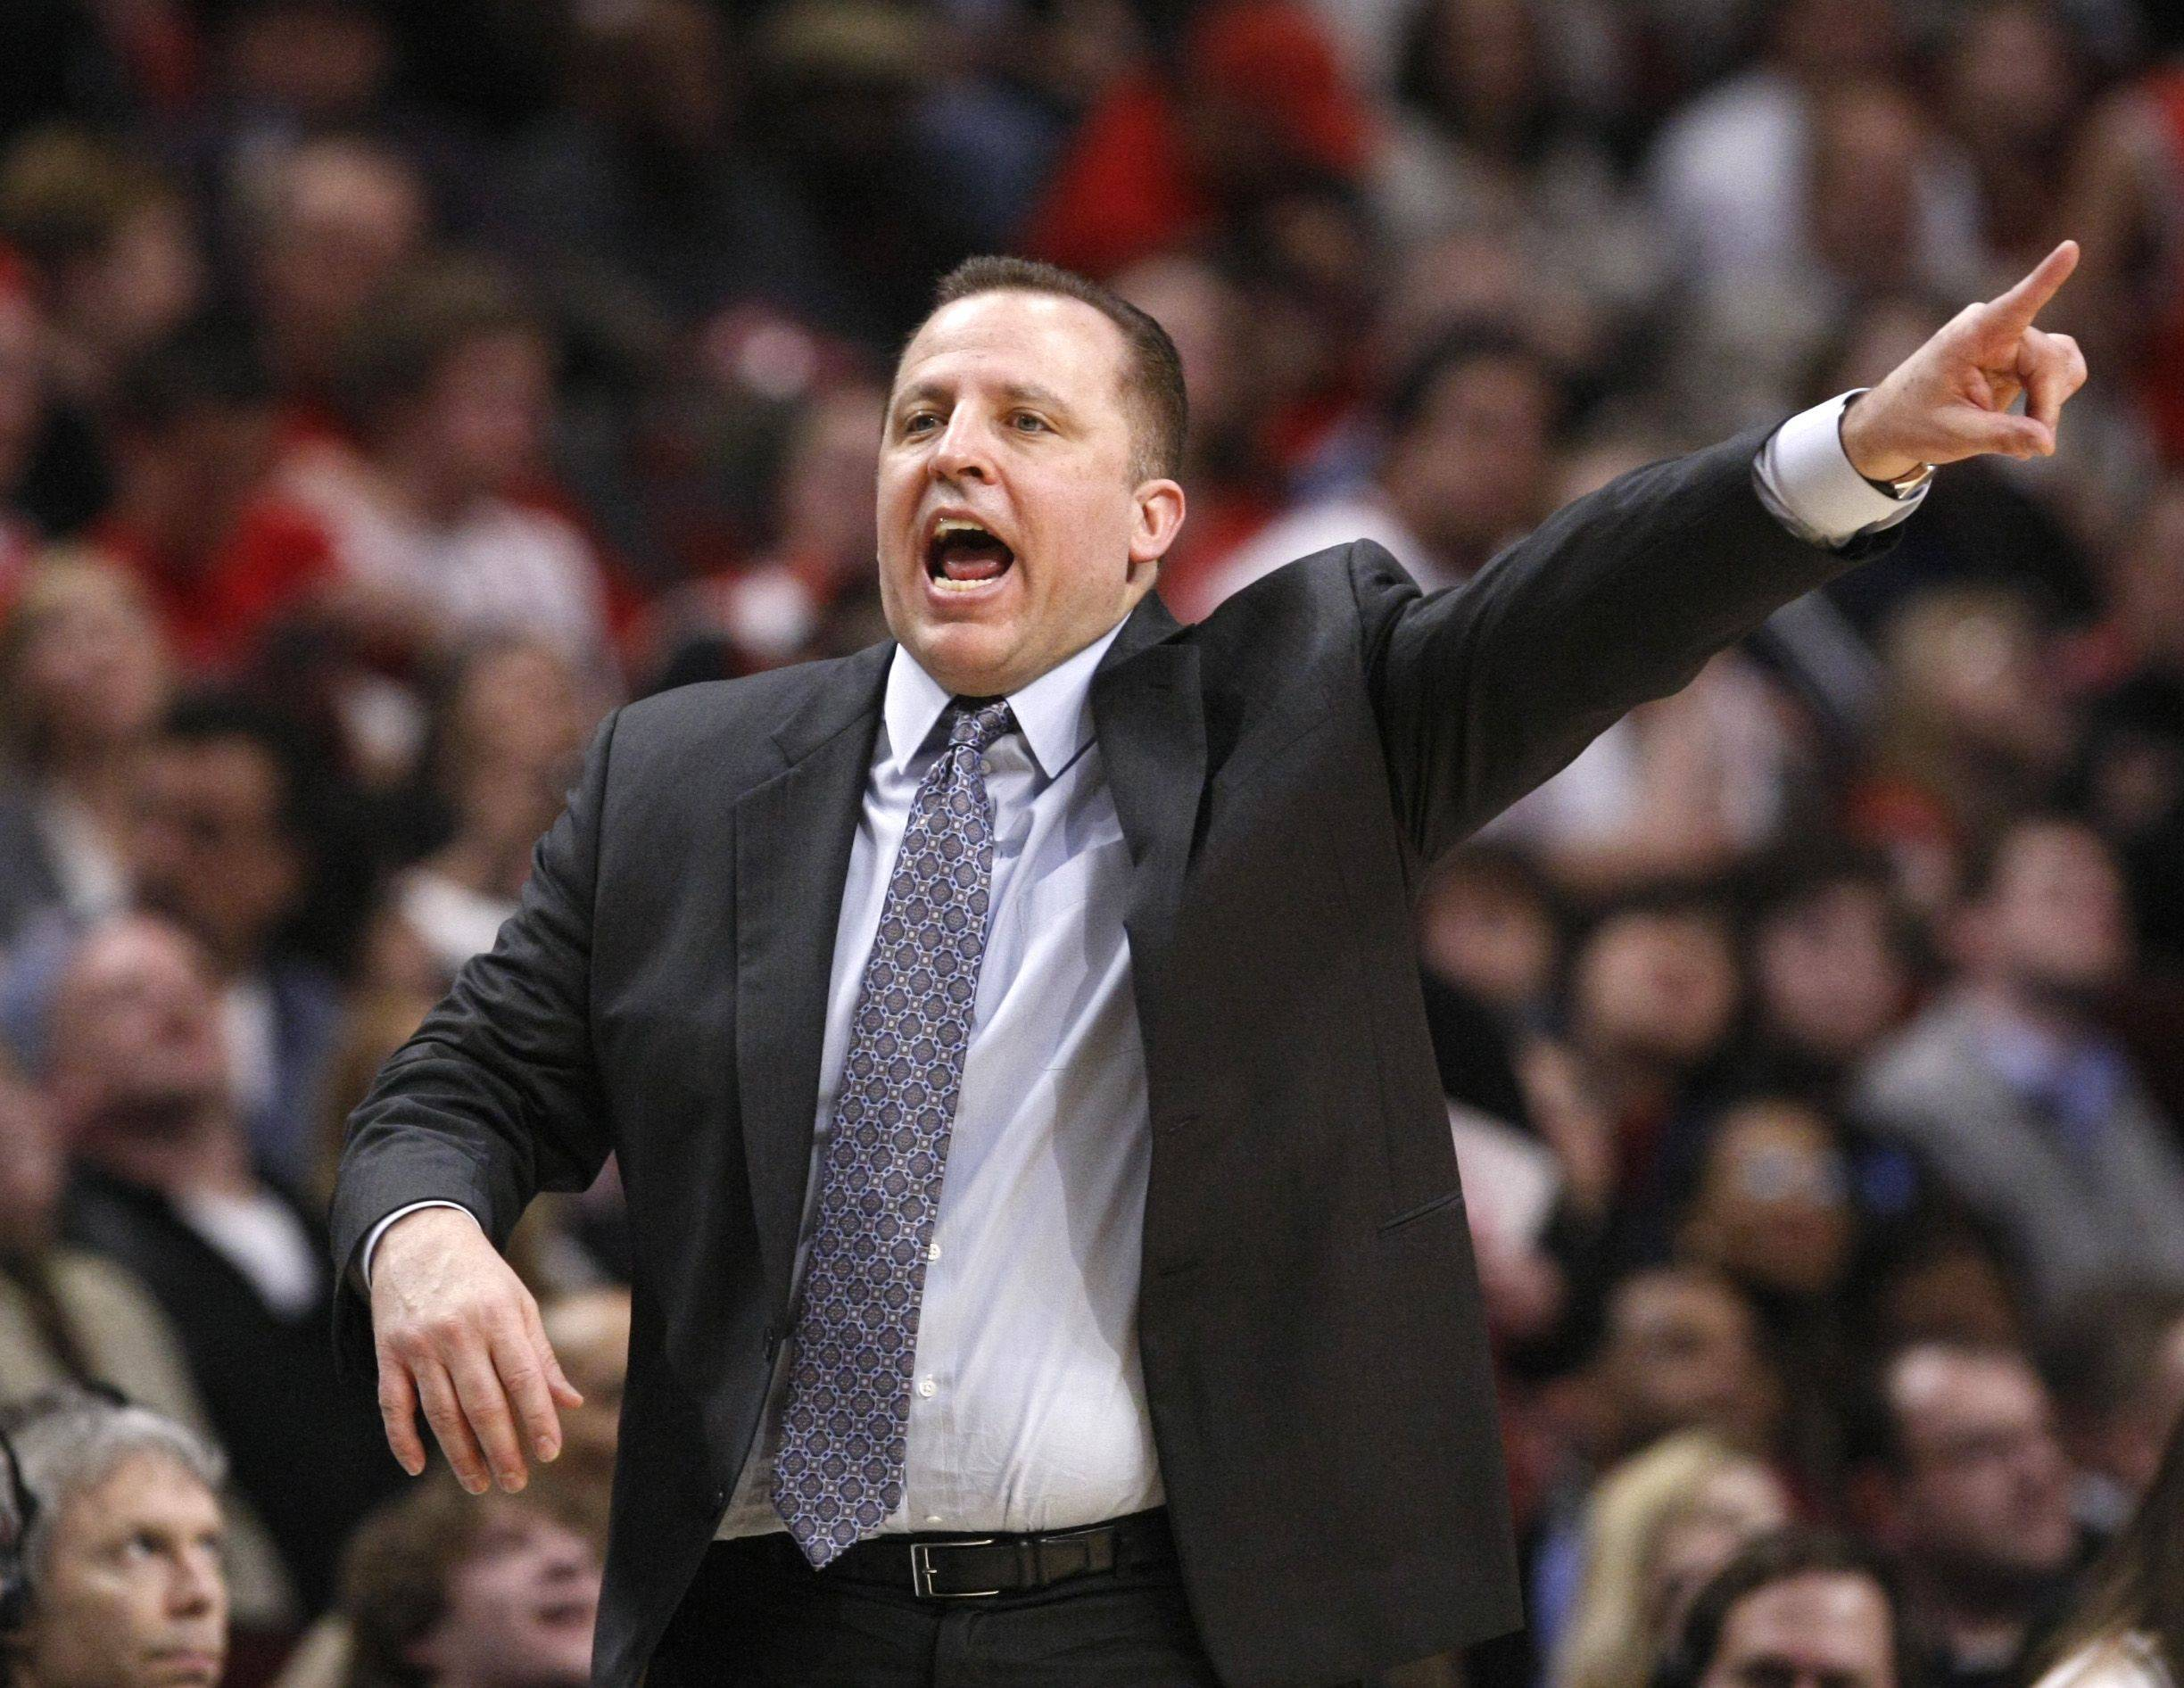 Chicago Bulls coach Tom Thibodeau directs his team during the second half of an NBA basketball game against the Sacramento Kings, Monday, March 21, 2011, in Chicago. The Bulls won 132-92.